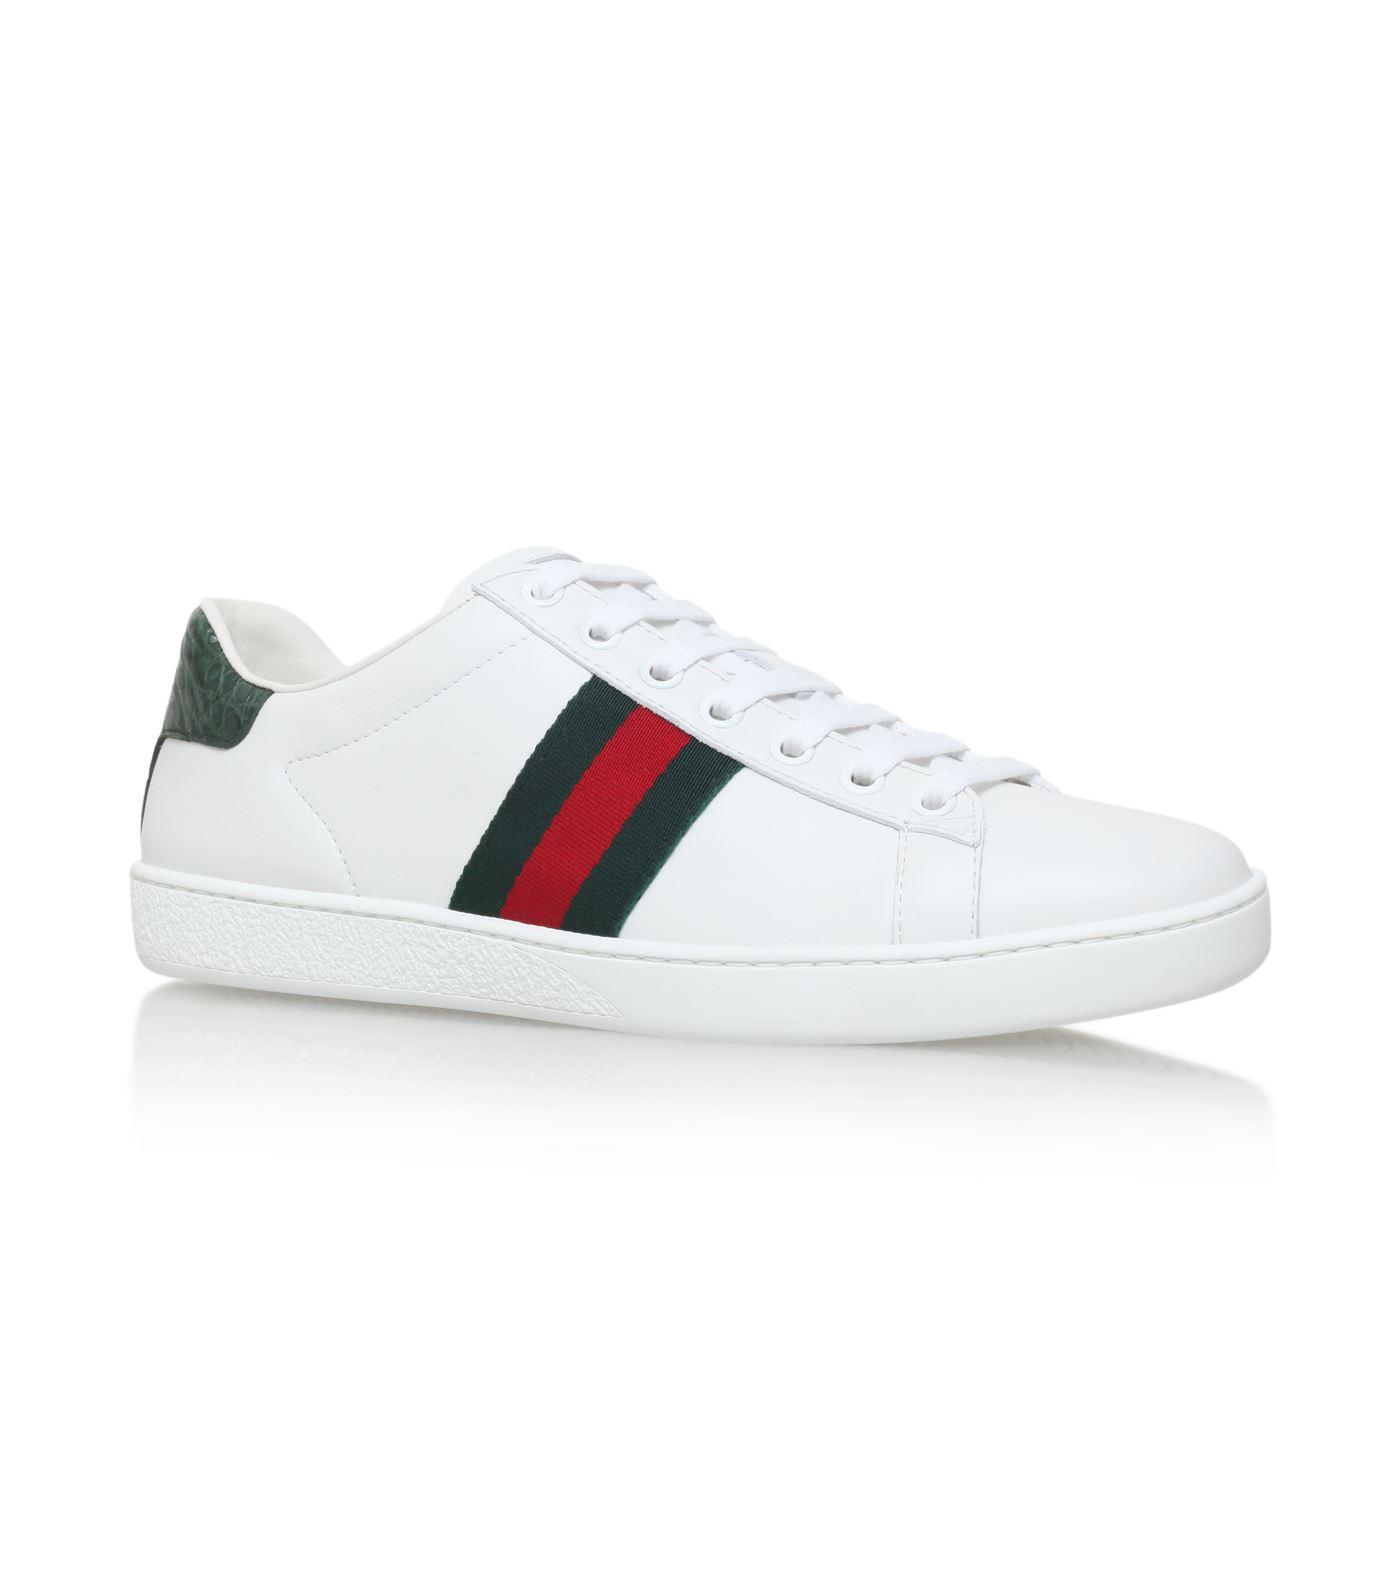 ec1d294941f96 Gucci Men s New Ace Leather Low-Top Sneakers